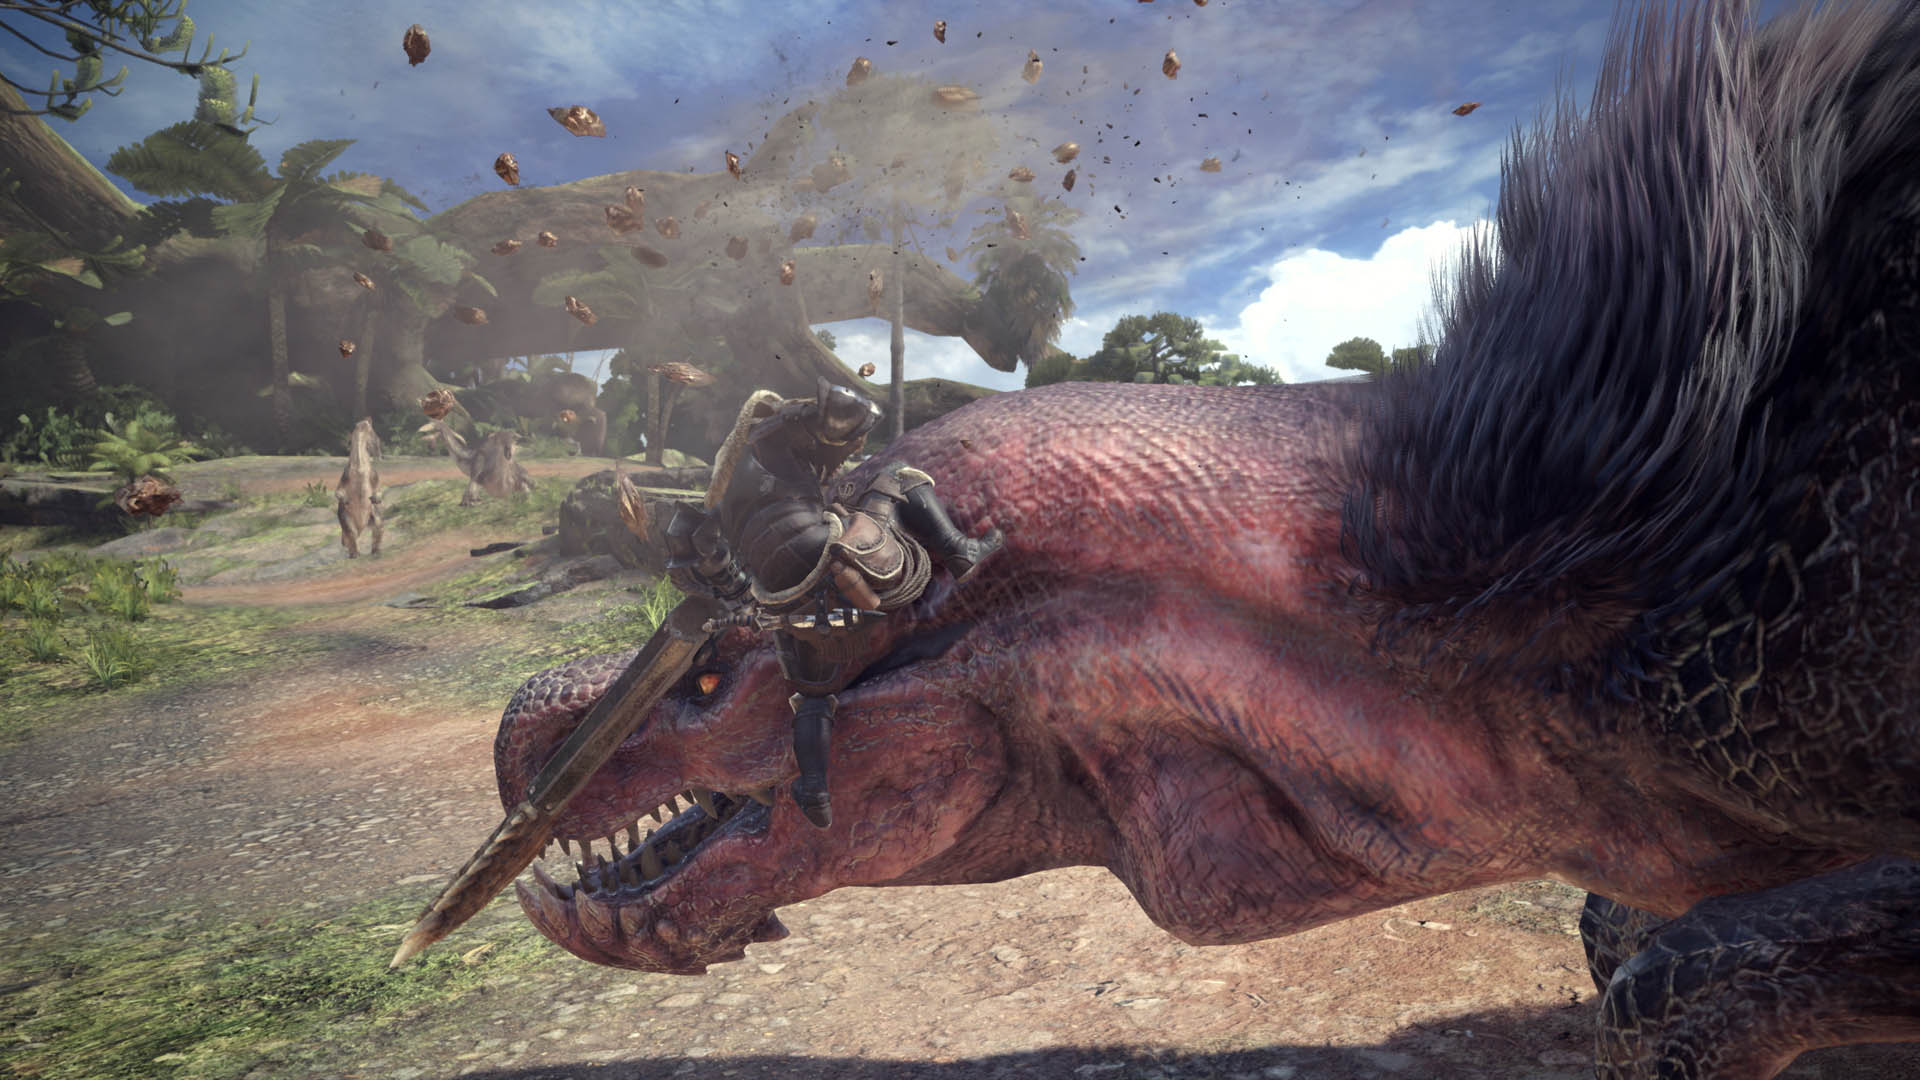 MONSTER HUNTER: WORLD (STEAM KEY/RUSSIA AND CIS)